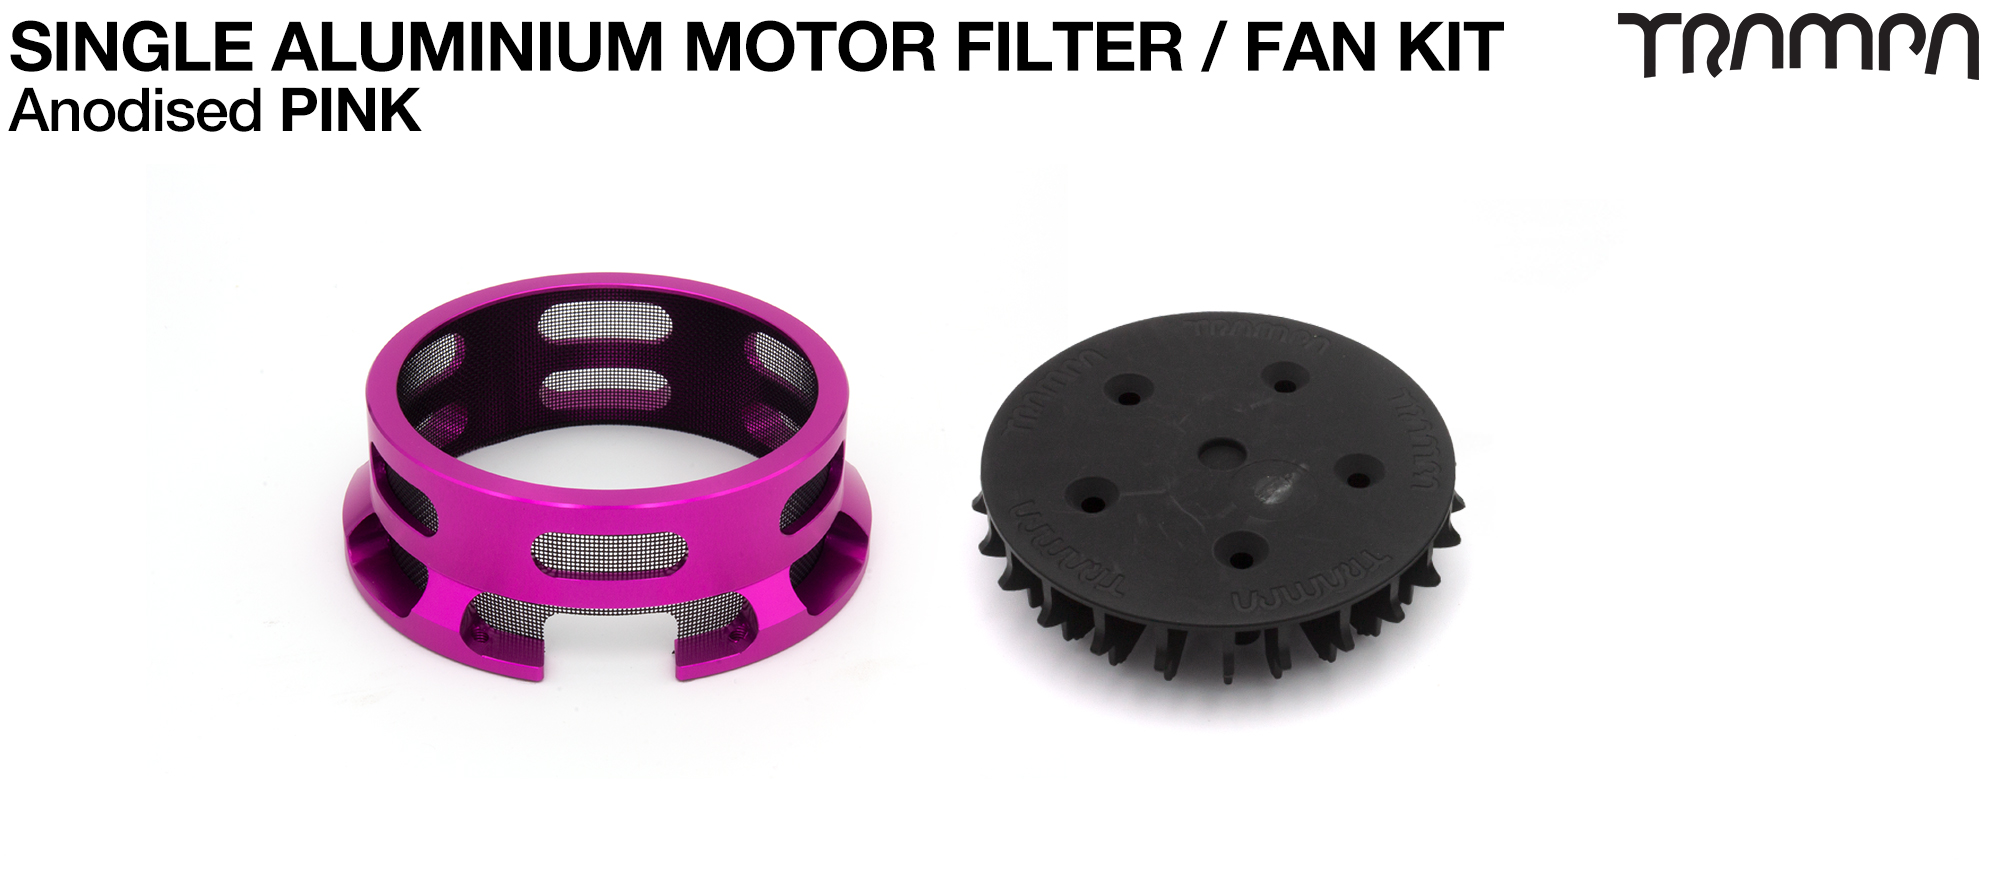 14FiFties BLACK Motor protection Housing with PINK particle Filter & Fan - SINGLE